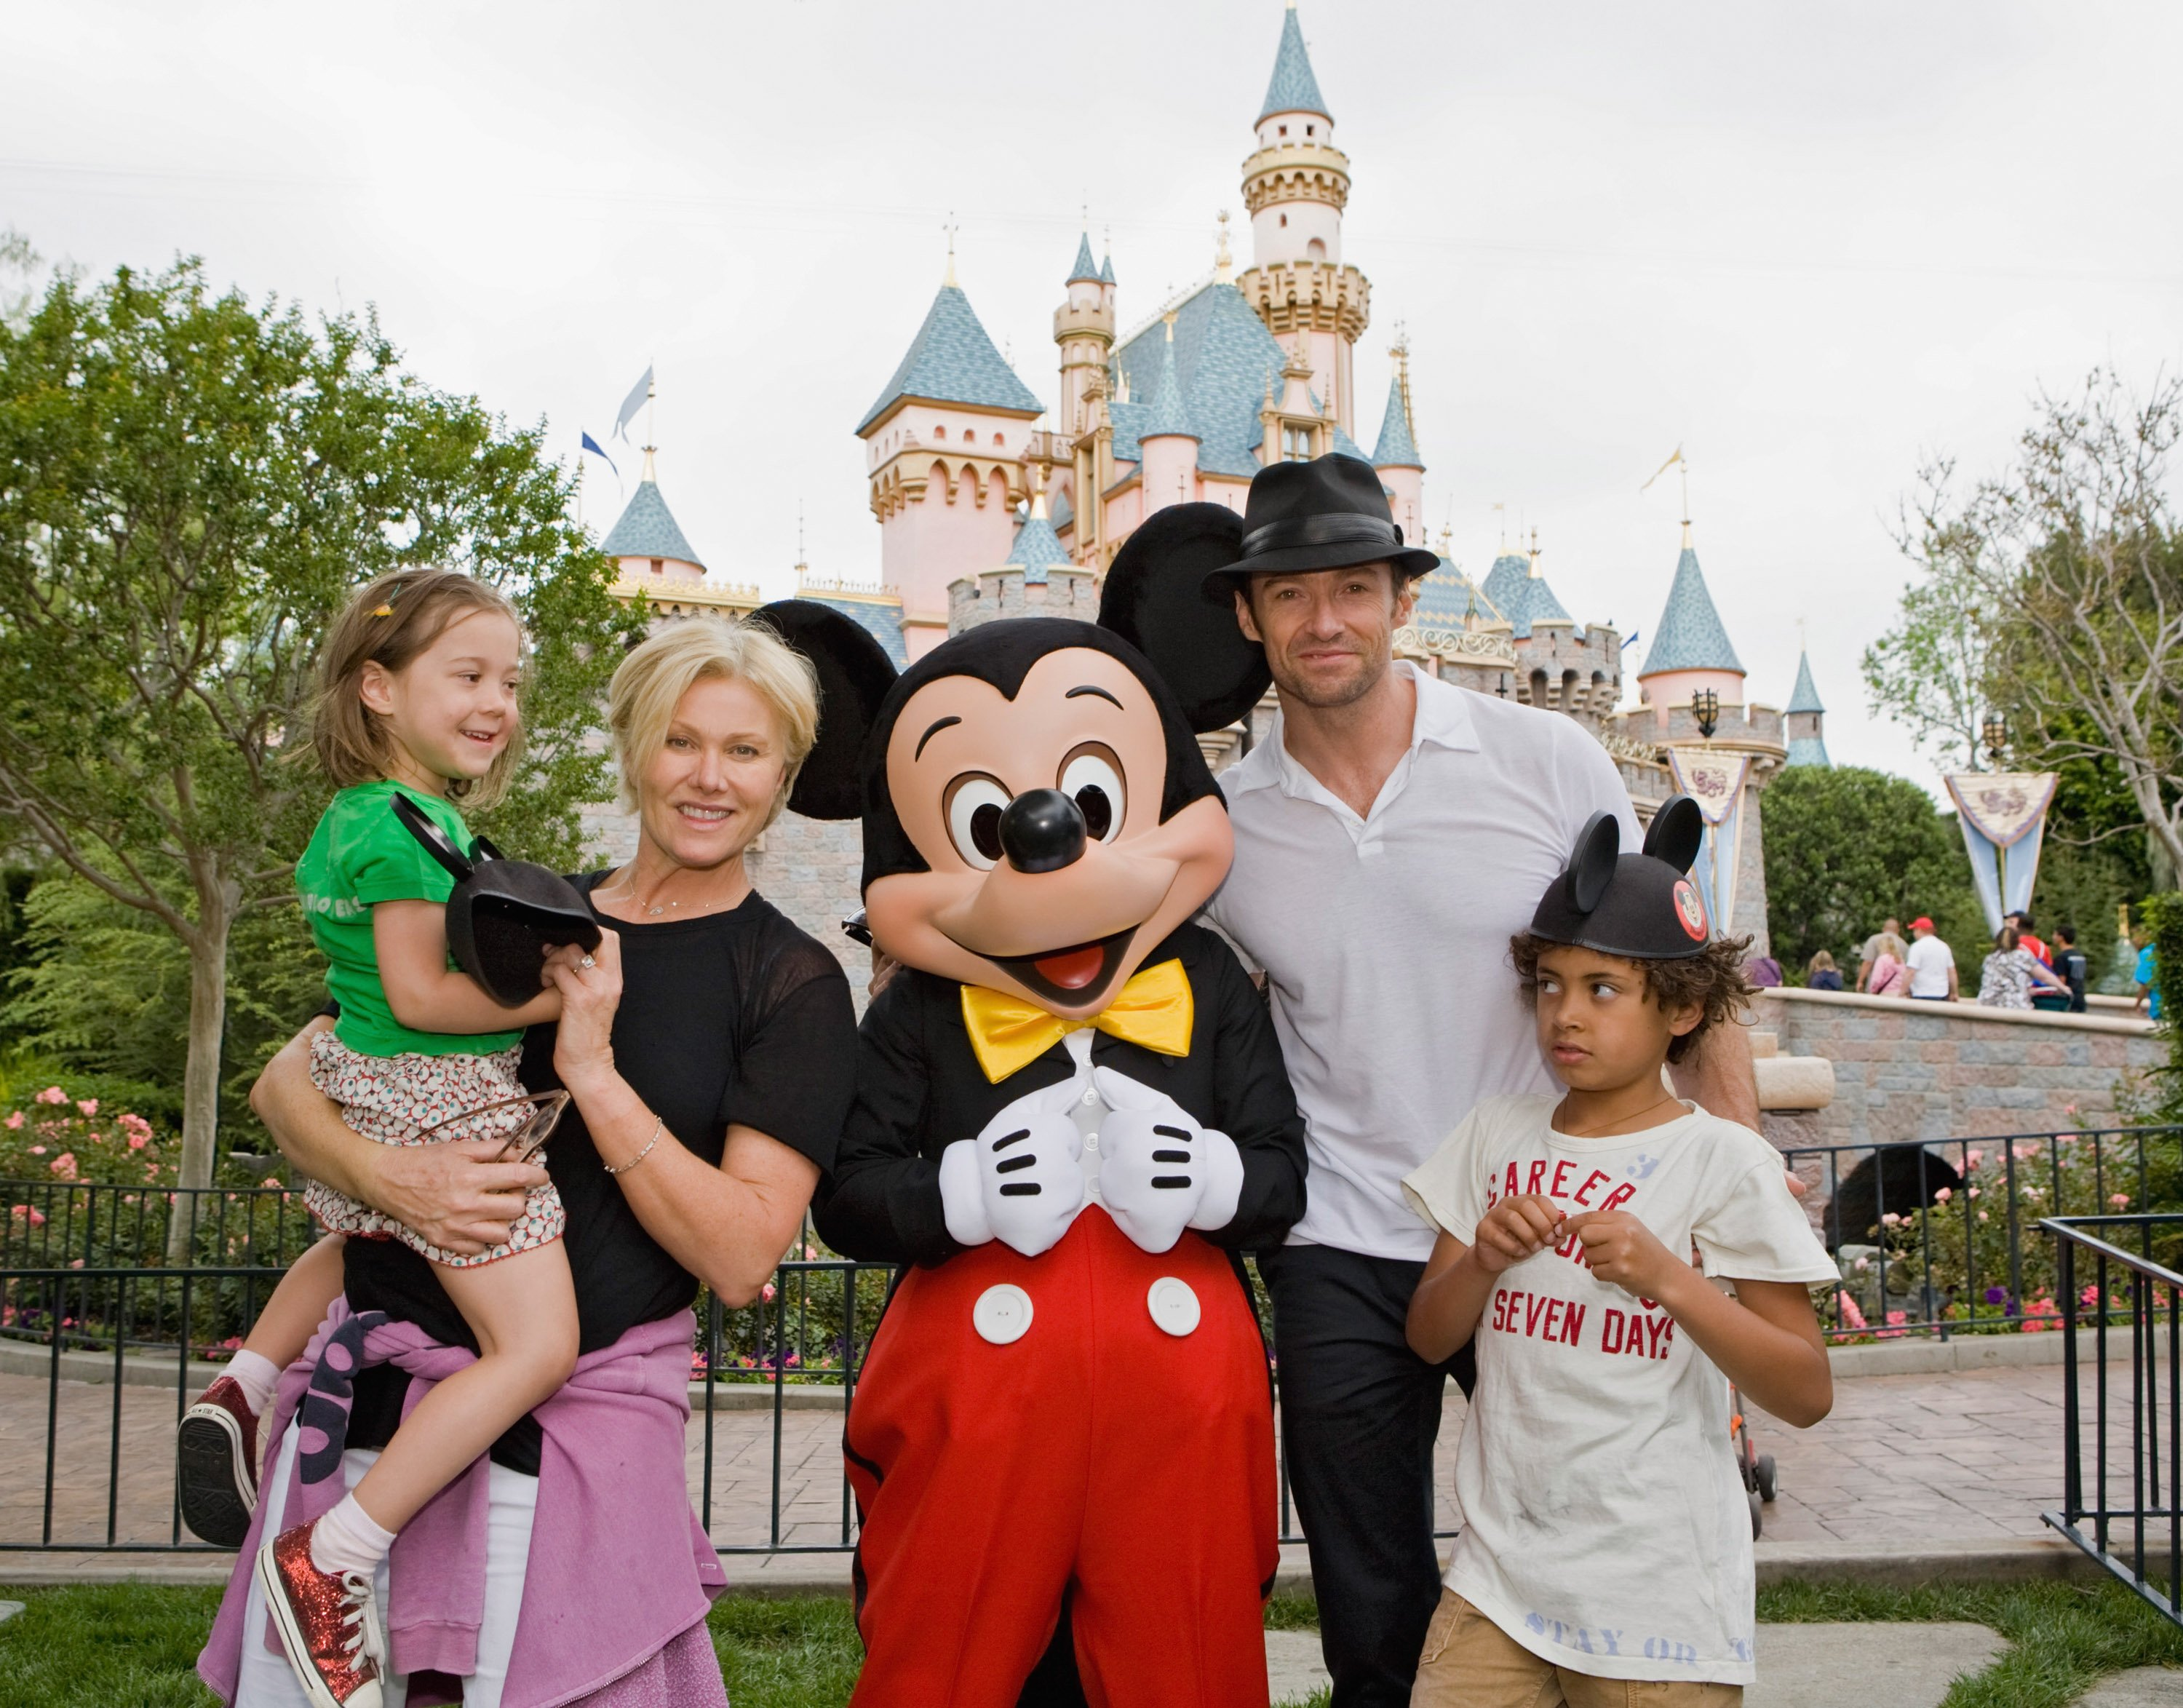 Hugh Jackman, his wife Deborra Lee Furness, and children Oscar Jackman and Ava Jackman pose at Disneyland. | Source: Getty Images